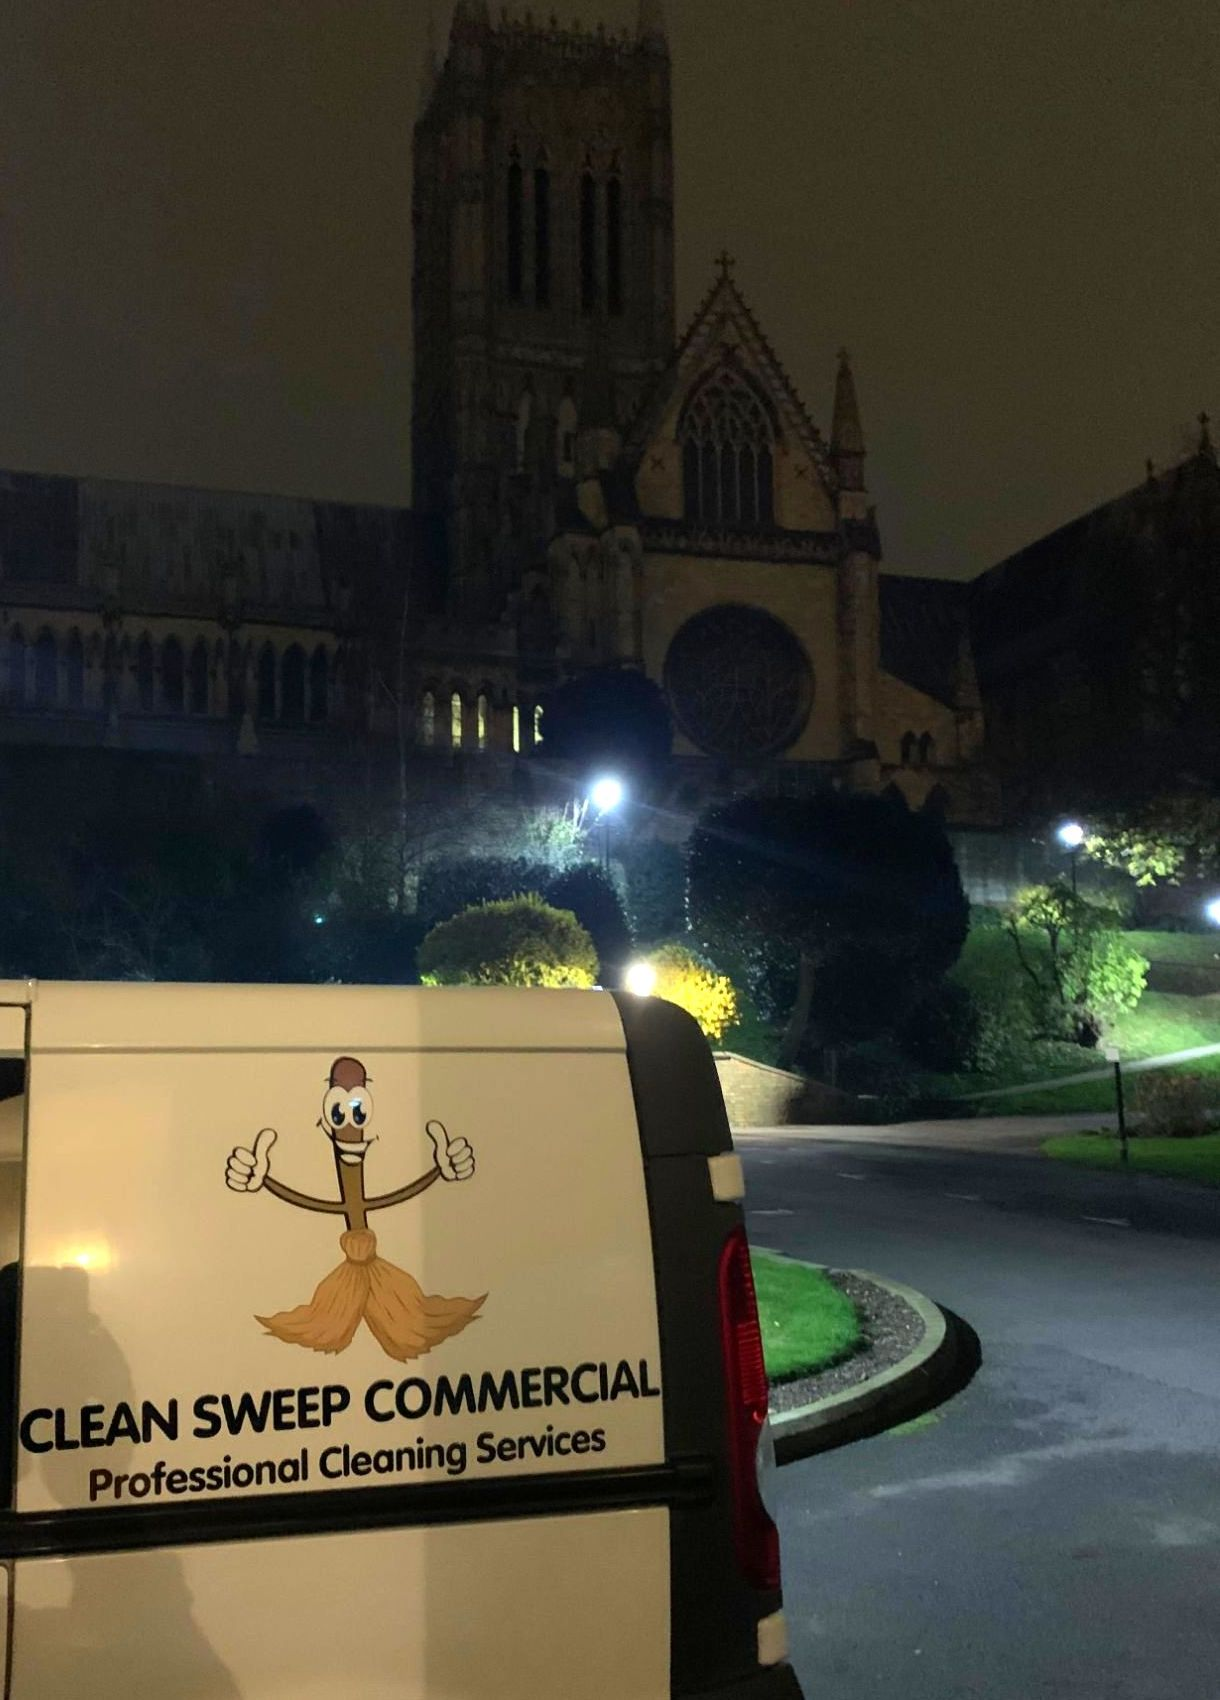 Clean Sweep Commercial Van Outside Lincoln Cathedral